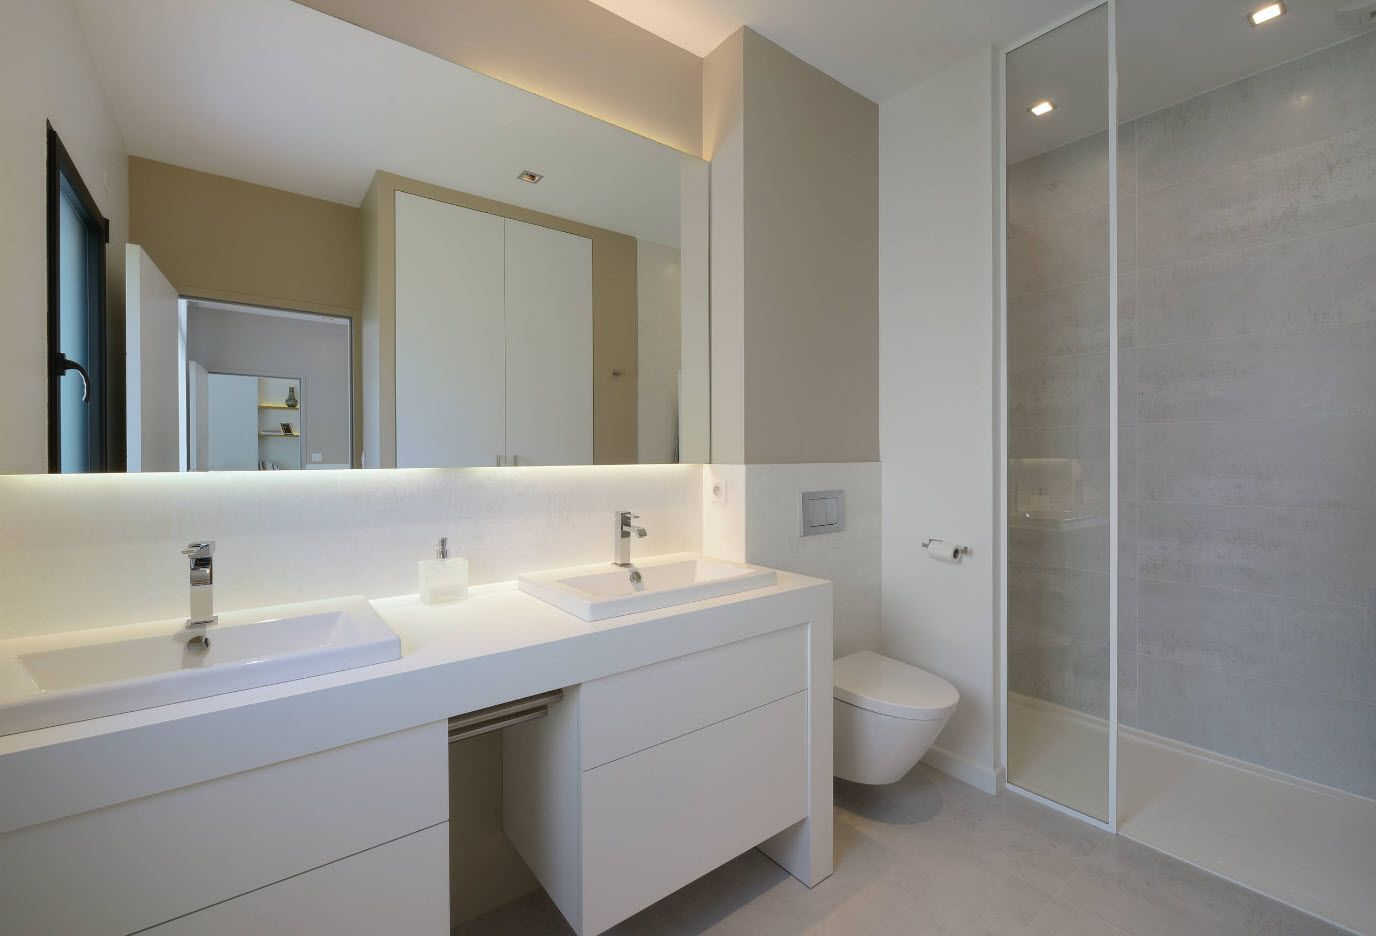 White and gray combination ofo the bathroom in contemporary style